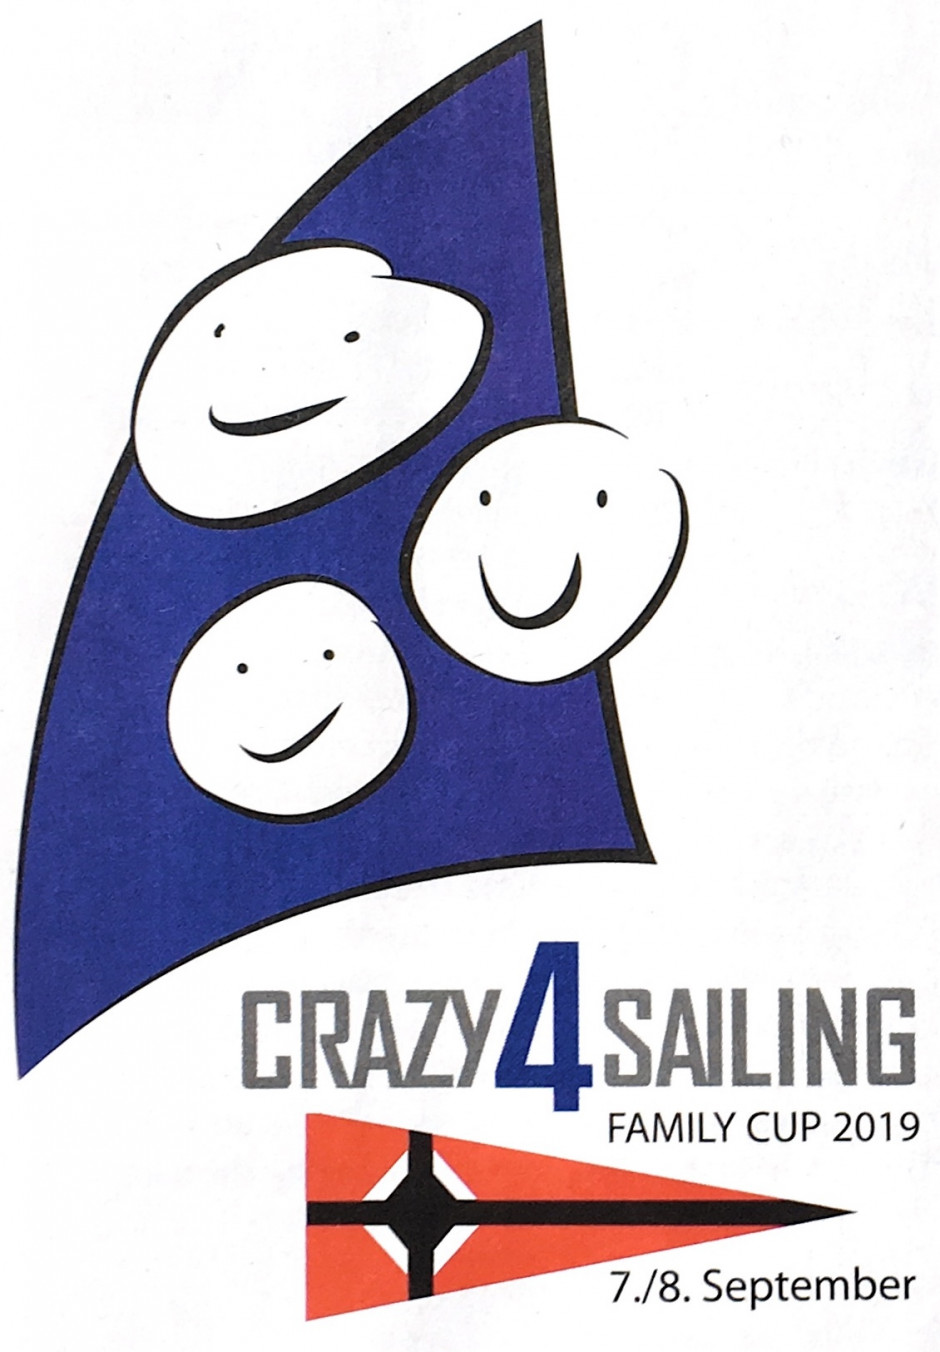 Crazy4Sailing Family Cup 2019